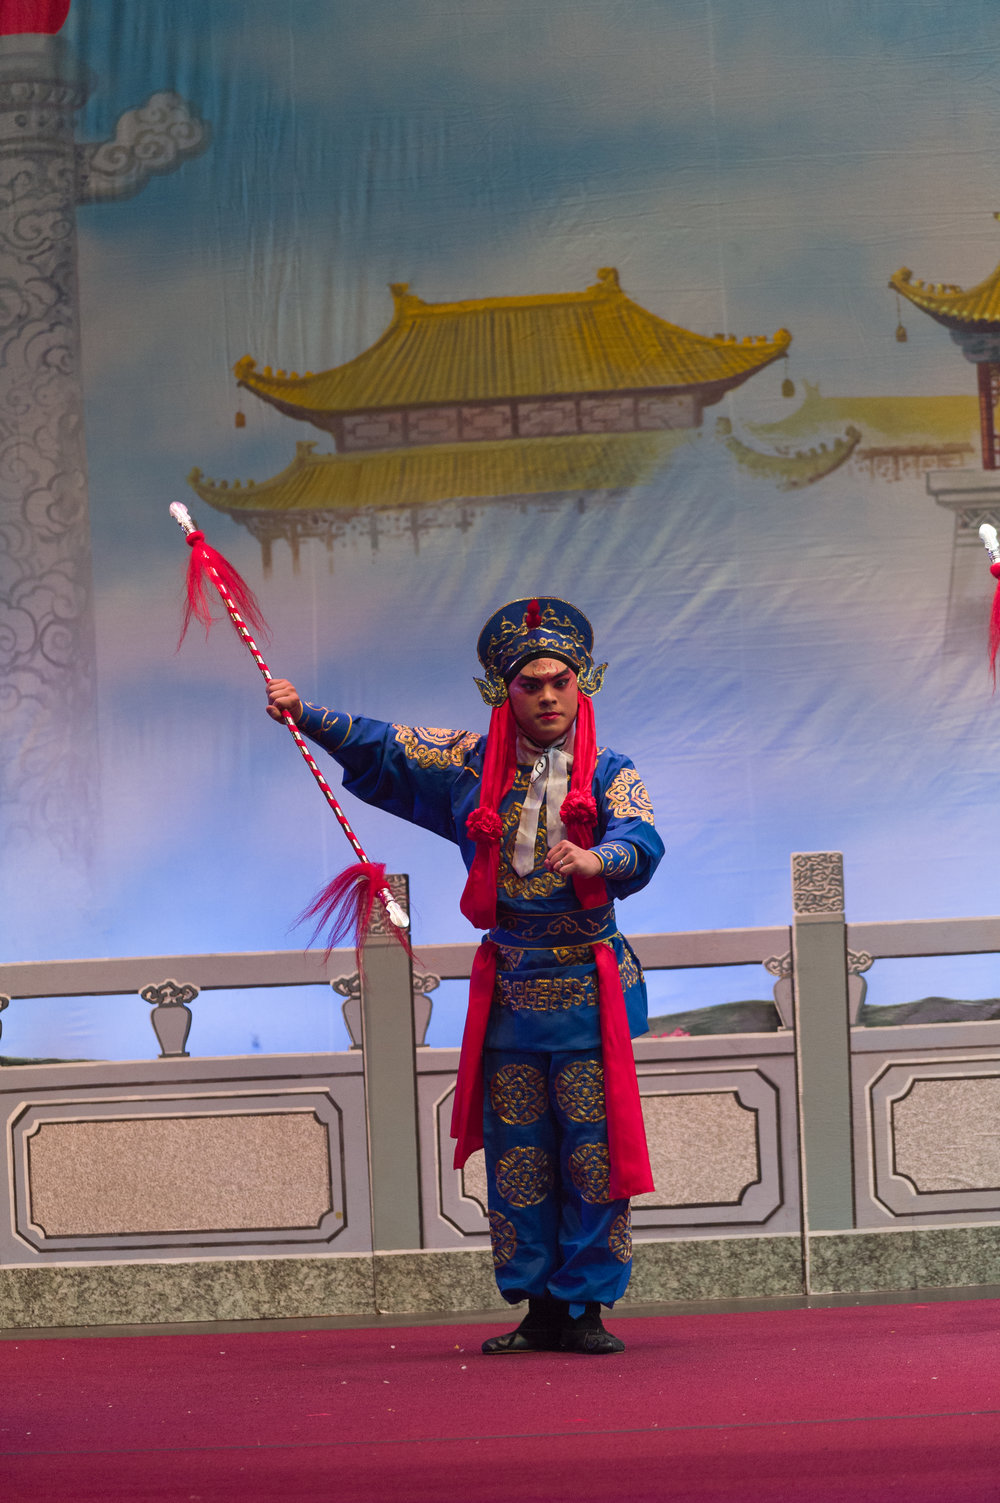 Red.Bean.Cantonese.Opera.Performance.Show.2014.July.27.2014.1829.jpg